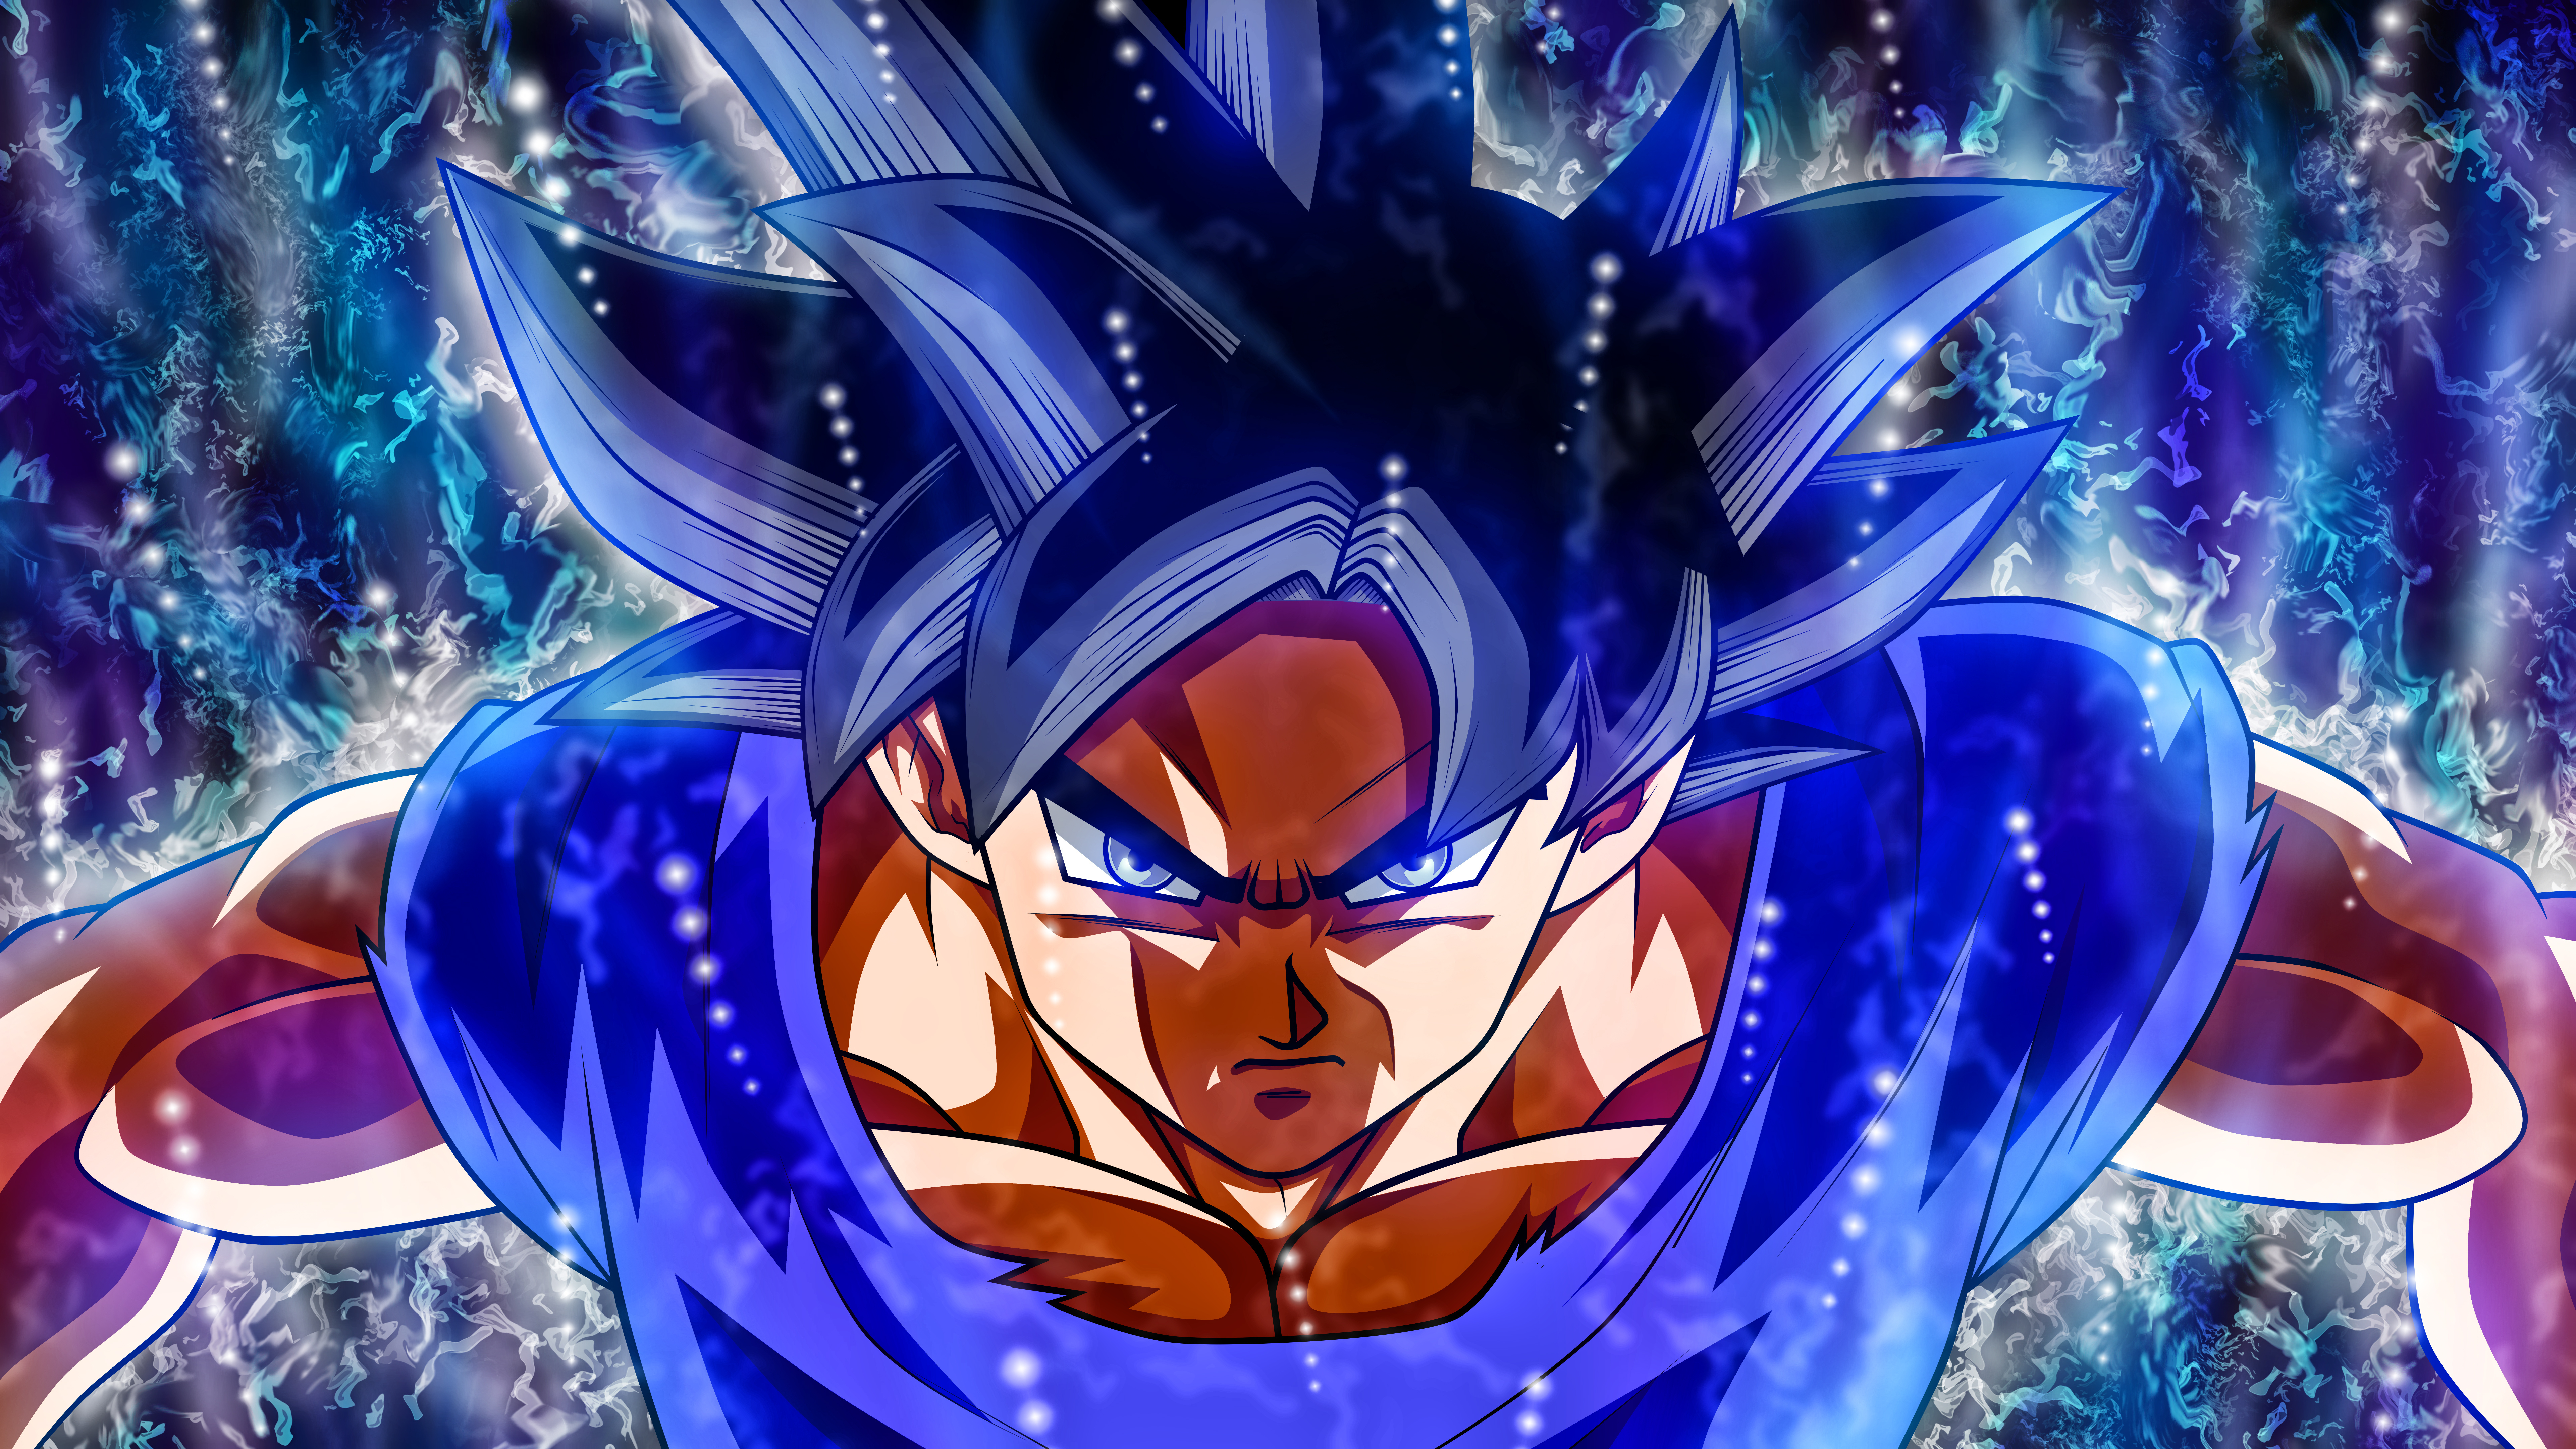 Goku Ultra Instinct Hd Wallpapers